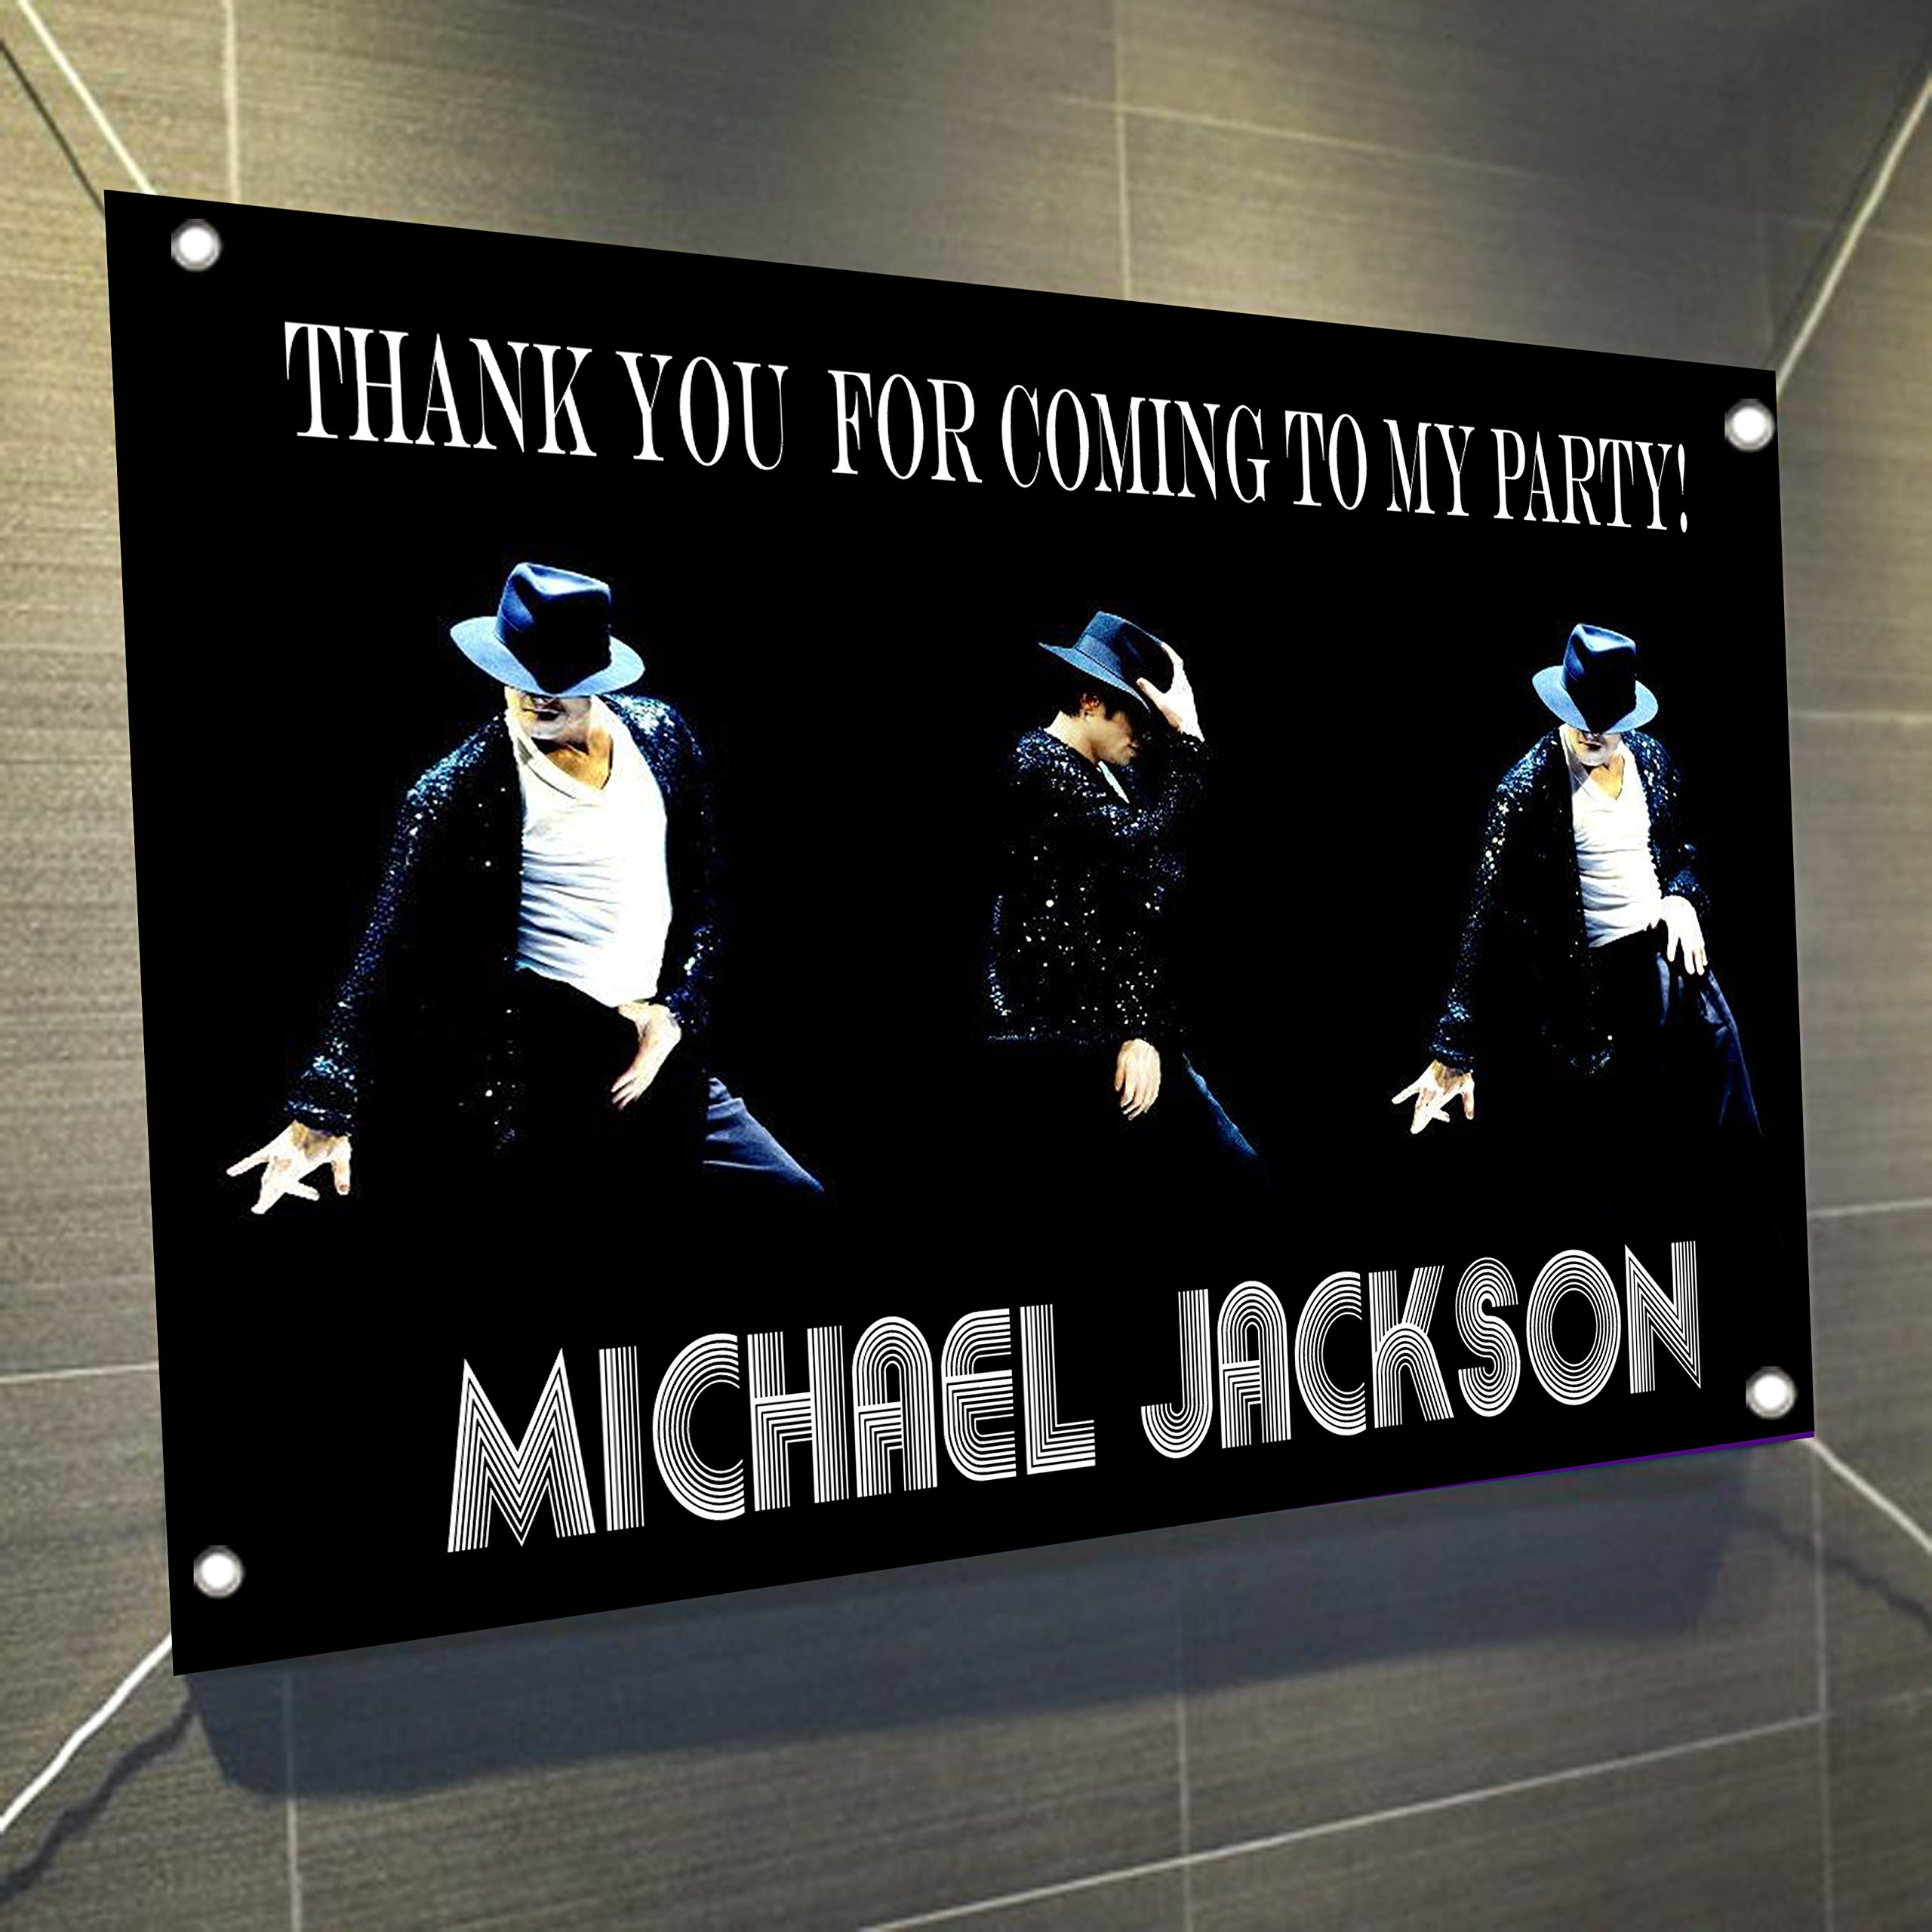 Michael Jackson Large Vinyl Indoor or Outdoor Banner Sign Poster Backdrop Decoration, Waterproof, 30'' x 24'', 2.5' x 2'